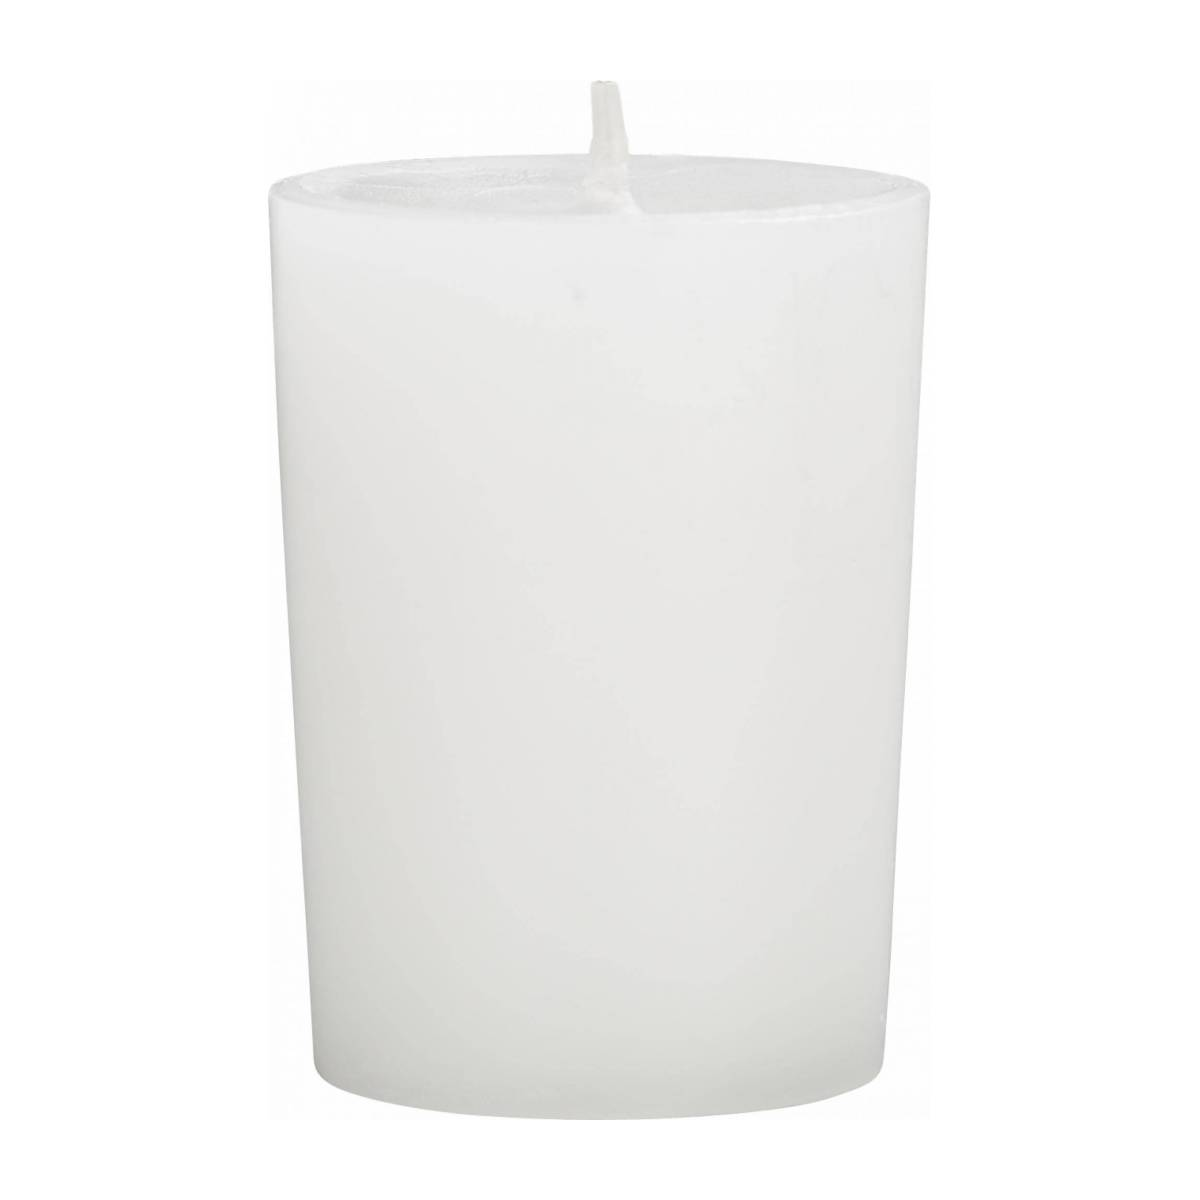 Refill for 3 small Basil scented candles, 3 x 150g n°2